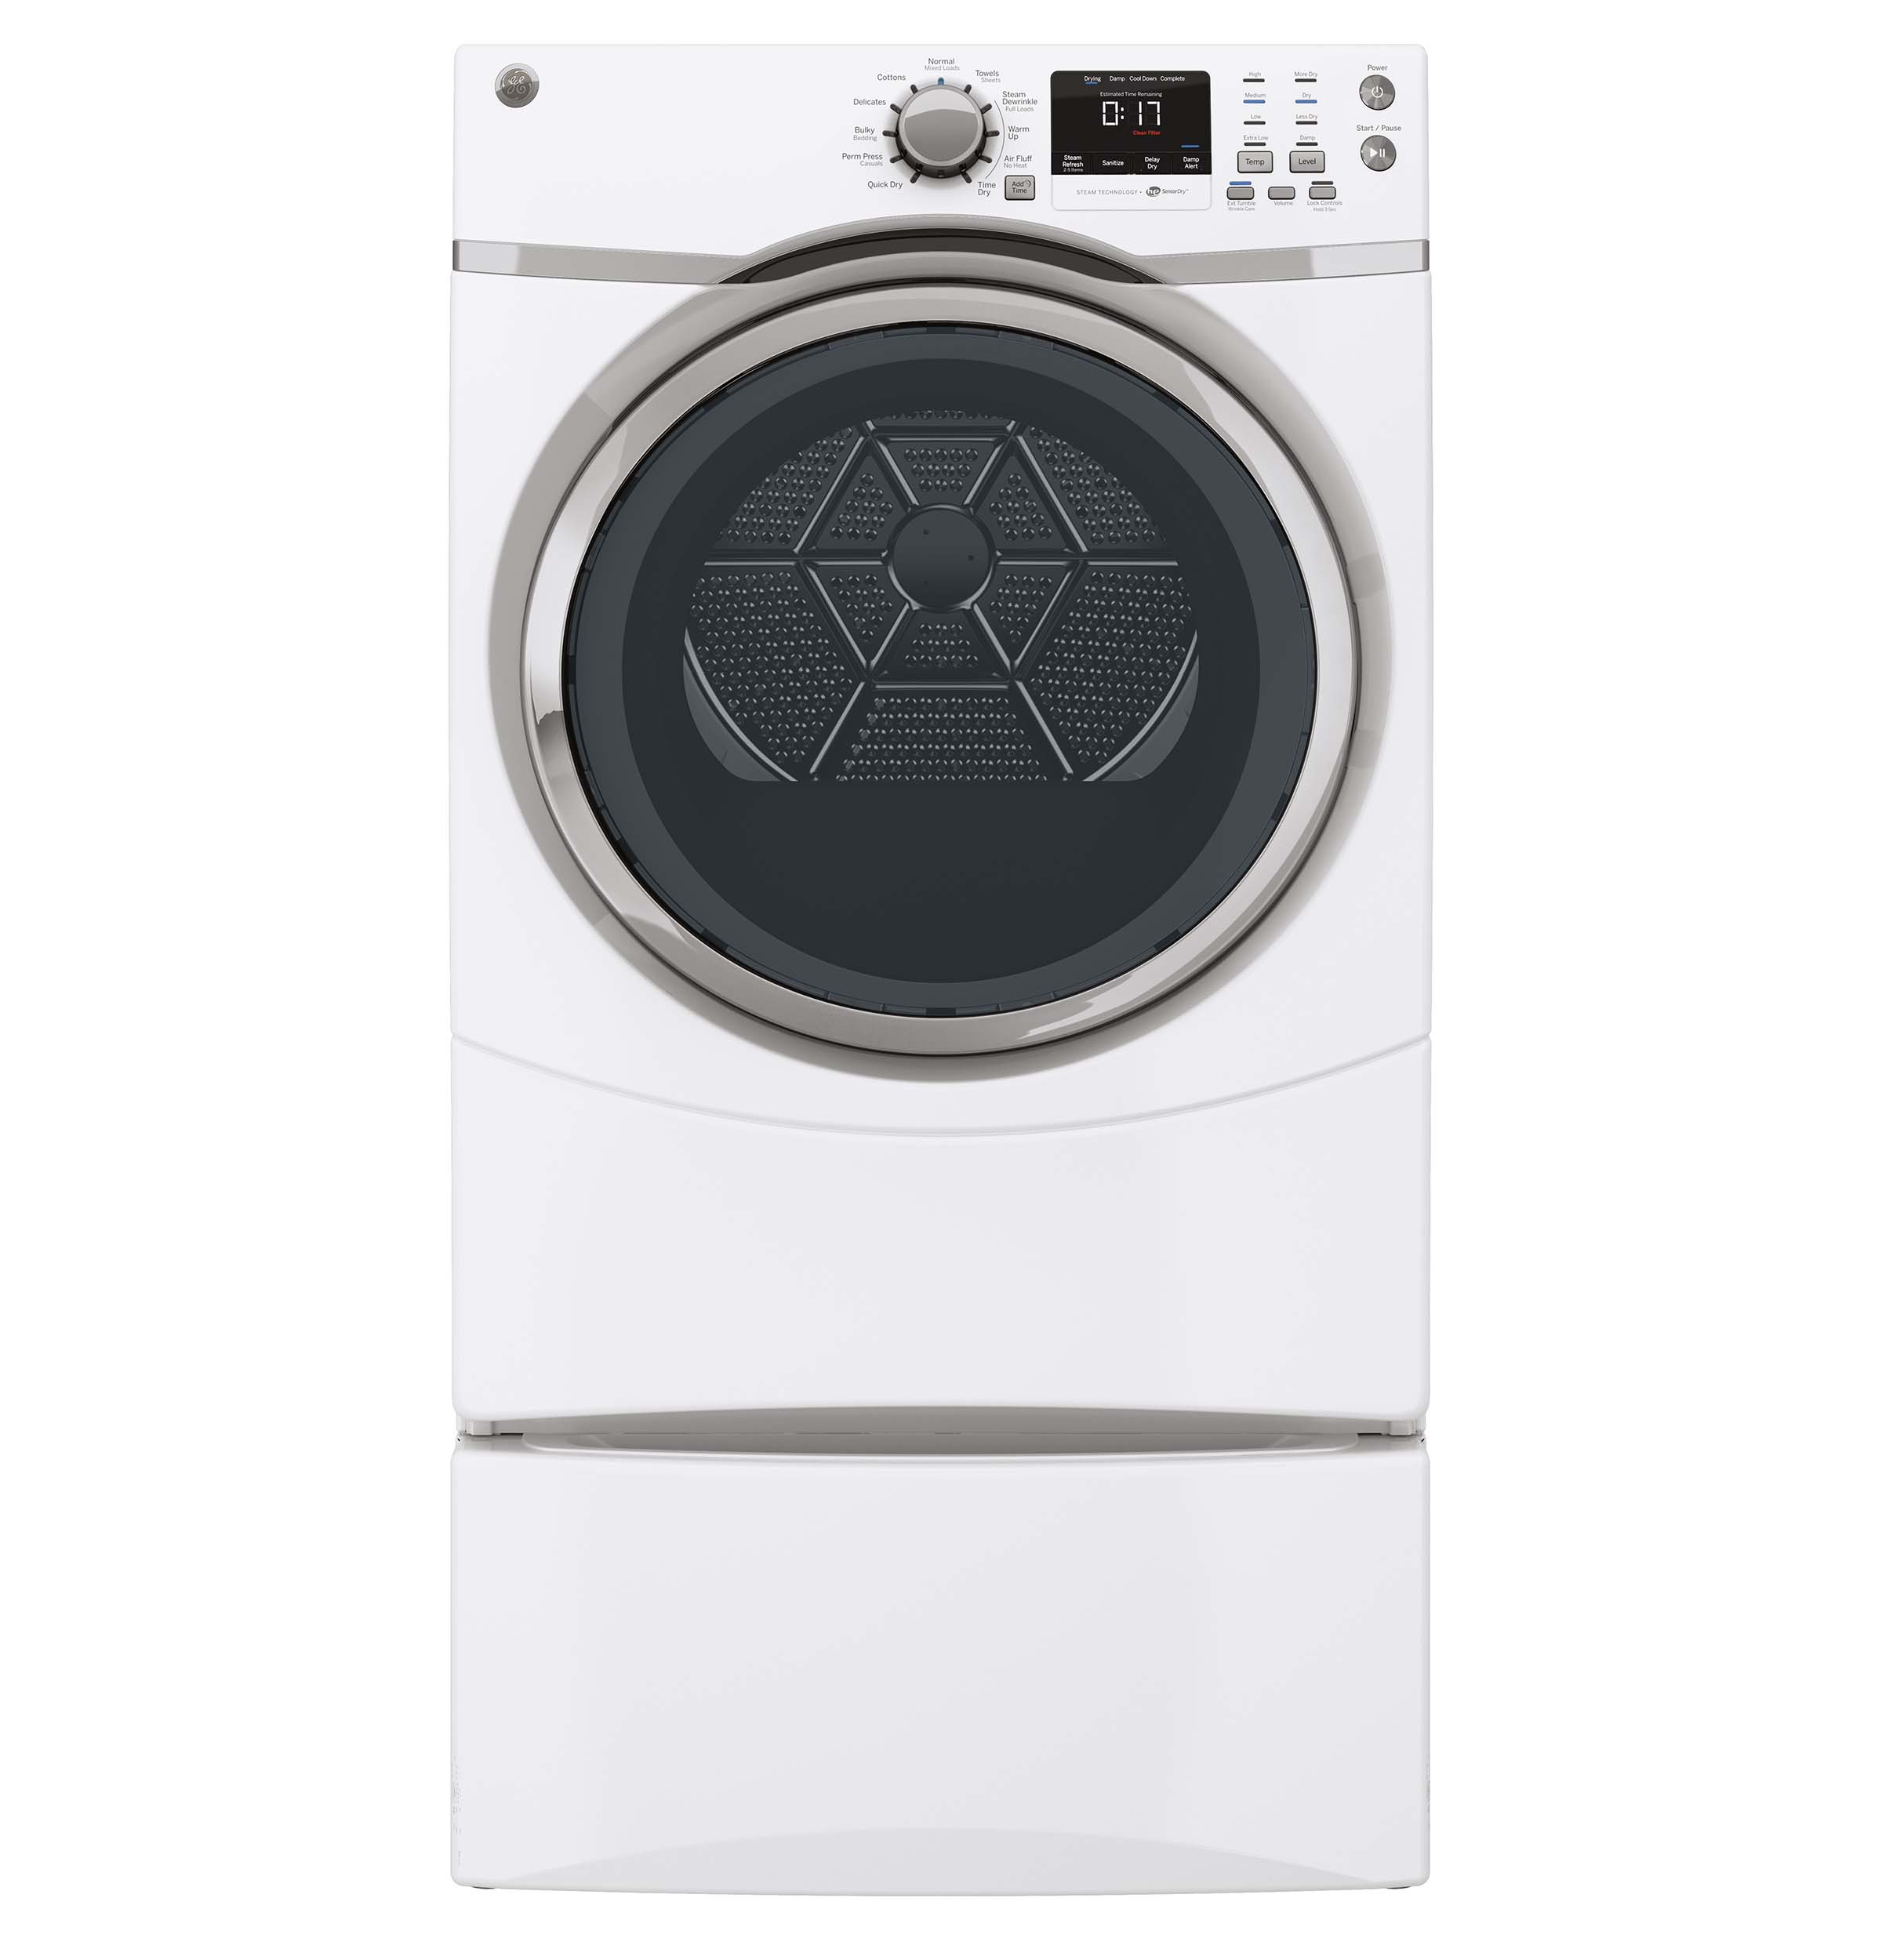 GE Appliances 7.5 cu. ft. Front-Load Electric Dryer w/ Steam - White GFDS170EHWW